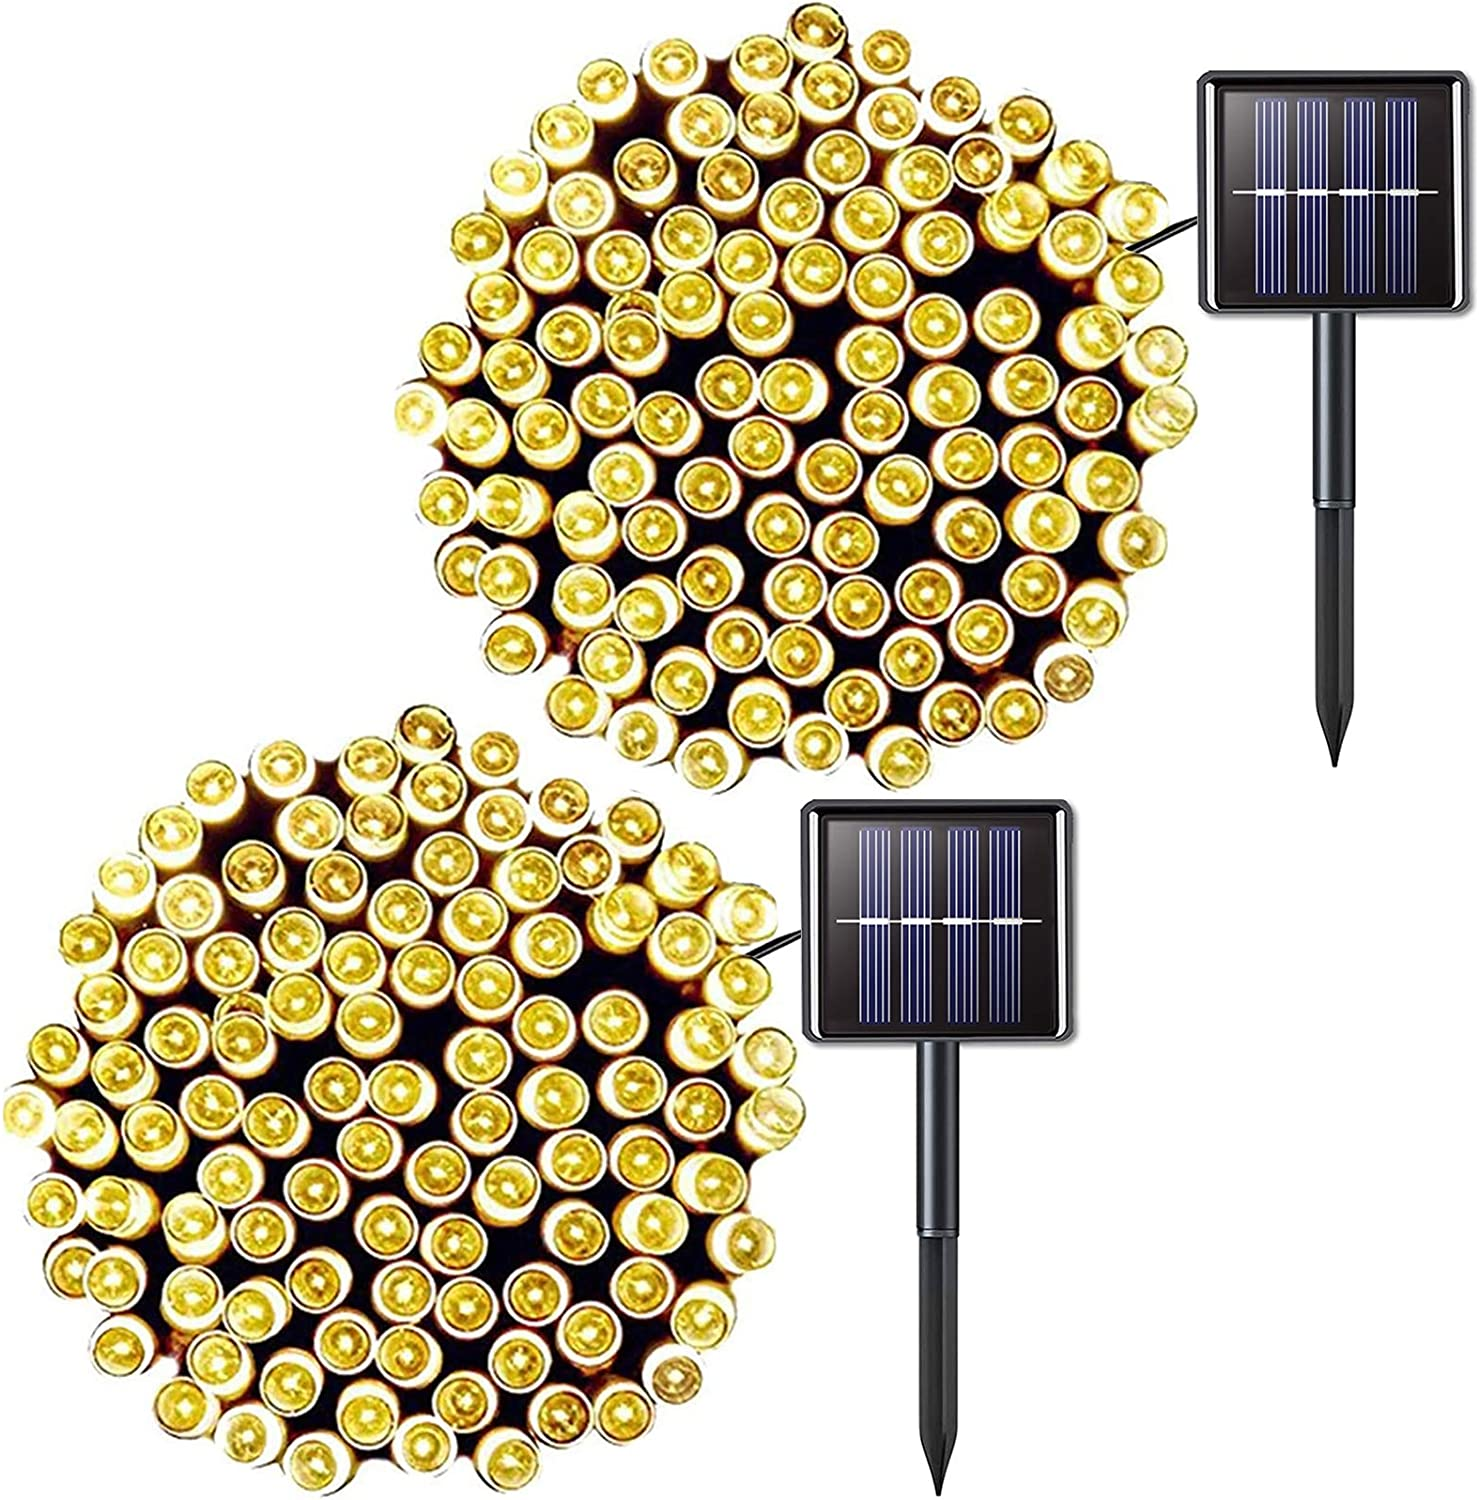 JMEXSUSS 2 Pack Solar String Light 200LED 75.5ft 8 Modes Solar Christmas Lights Waterproof for Gardens, Wedding, Party, Homes, Christmas Tree, Xmas, Curtains, Outdoors (200LED-Warm White-2Pack)